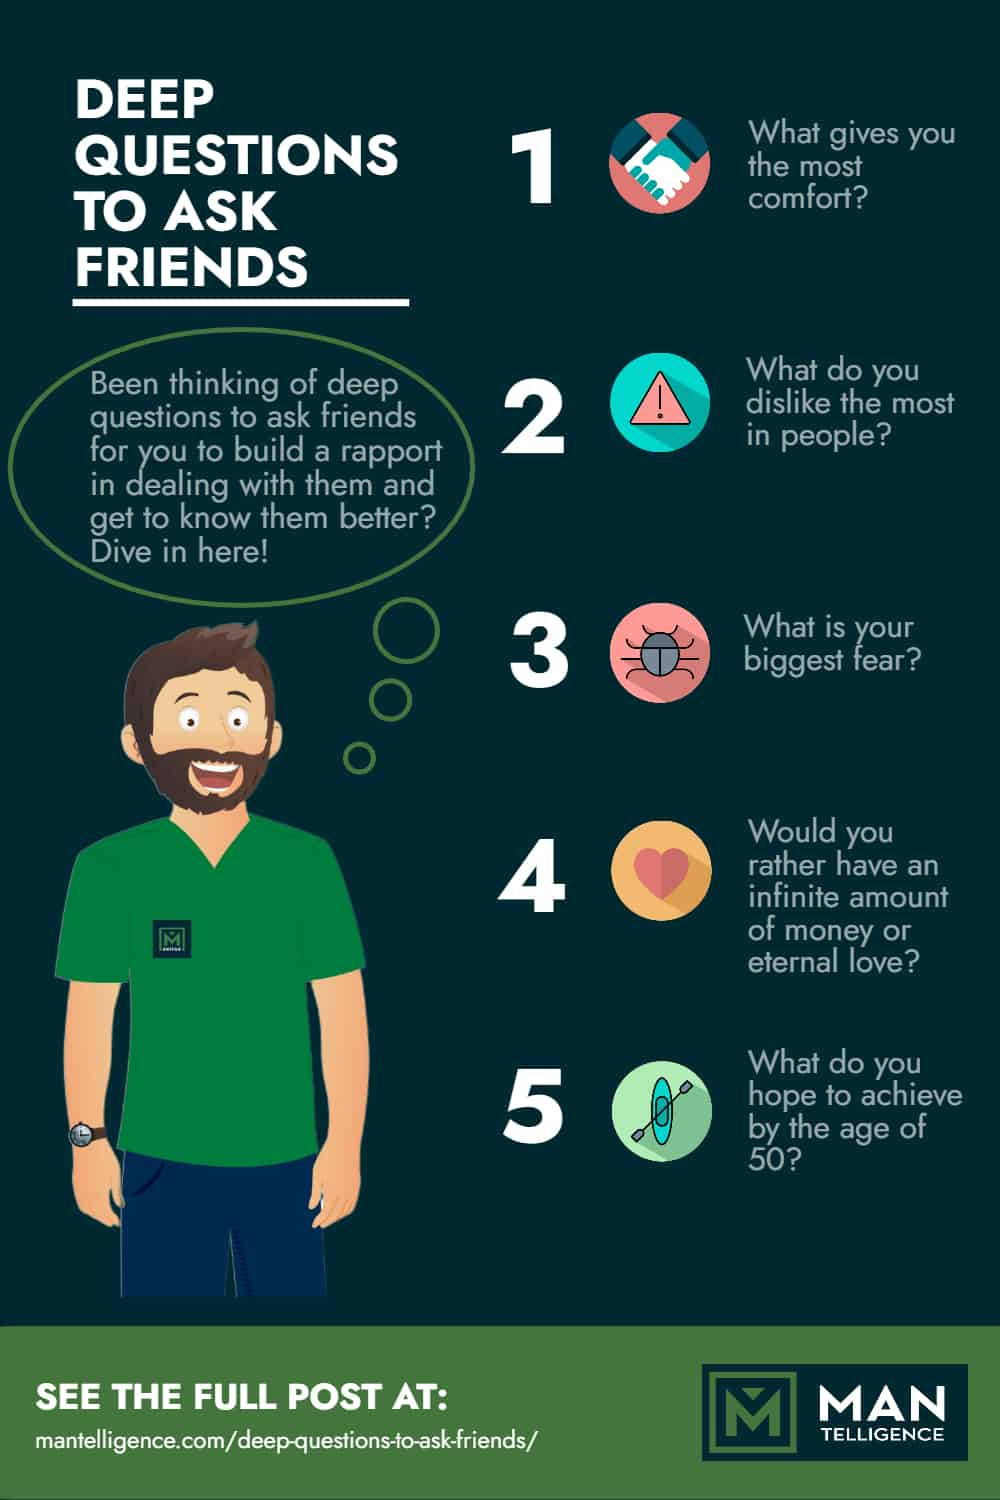 Deep Questions To Ask Friends - Infographic